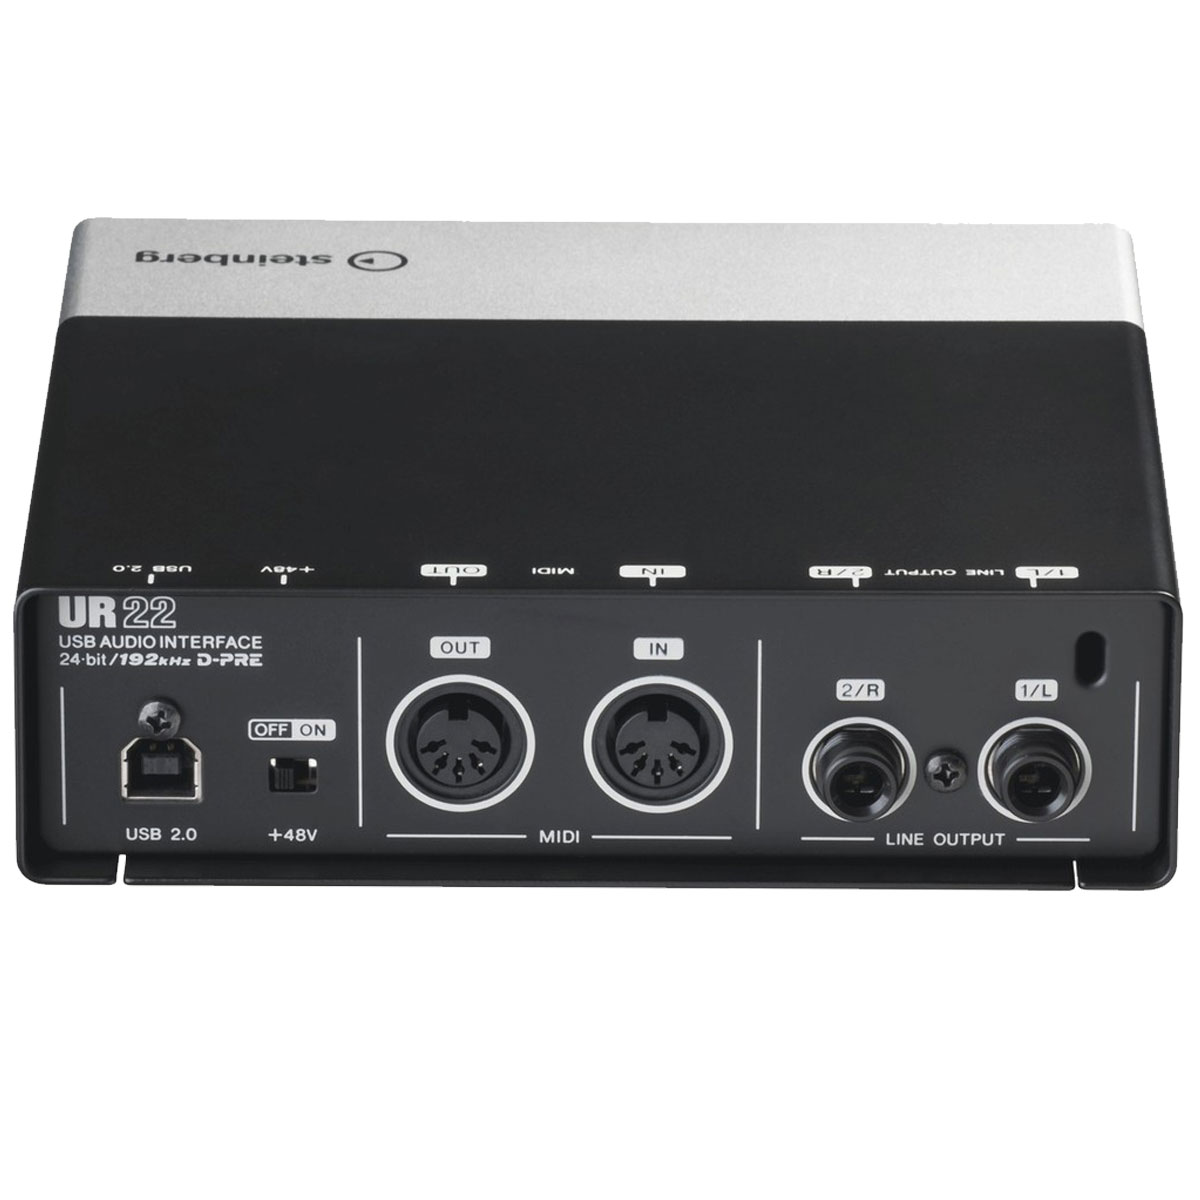 Interface de Áudio 2 IN x 2 OUT c/ USB UR22 - Steinberg